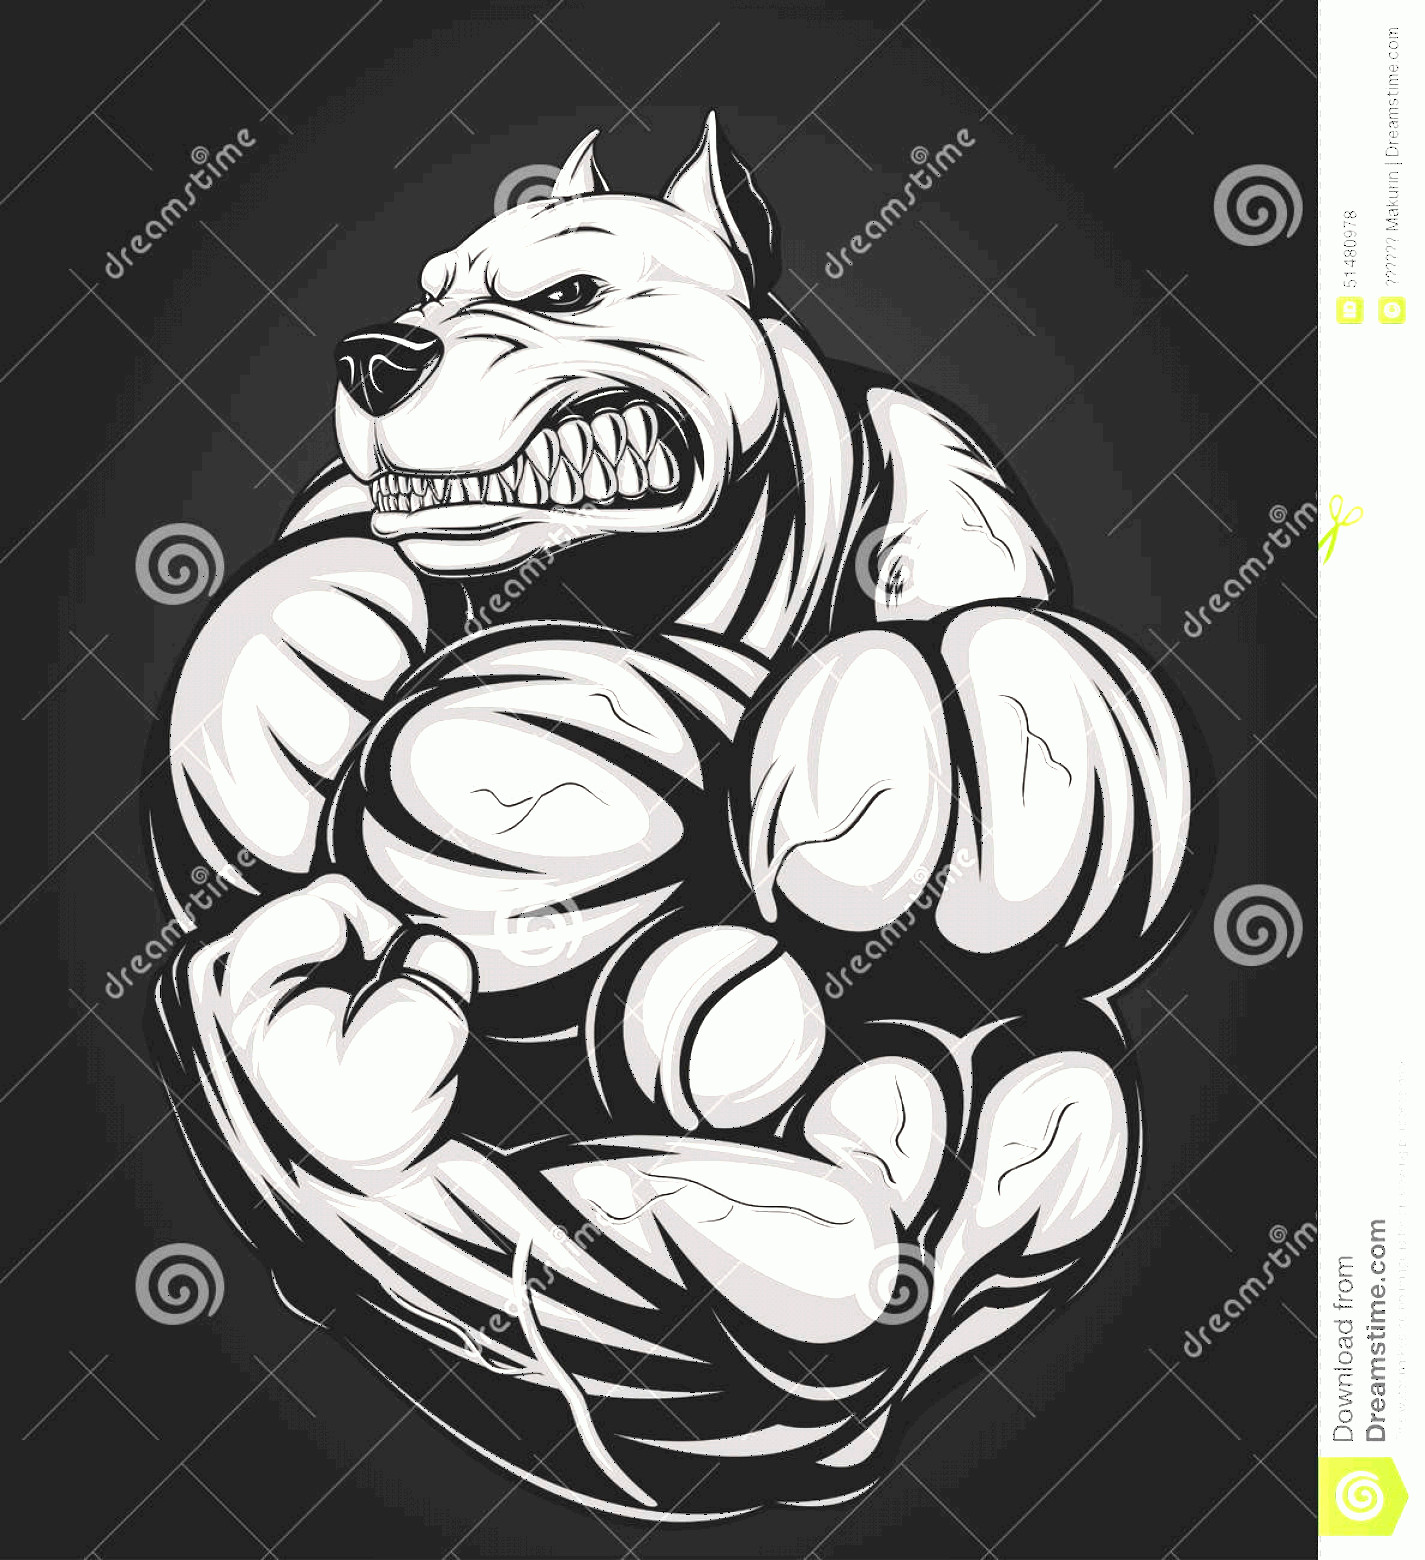 Angry Dog Vector Black And White: Stock Illustration Angry Dog Vector Illustration Strong Pitbull Big Biceps Image